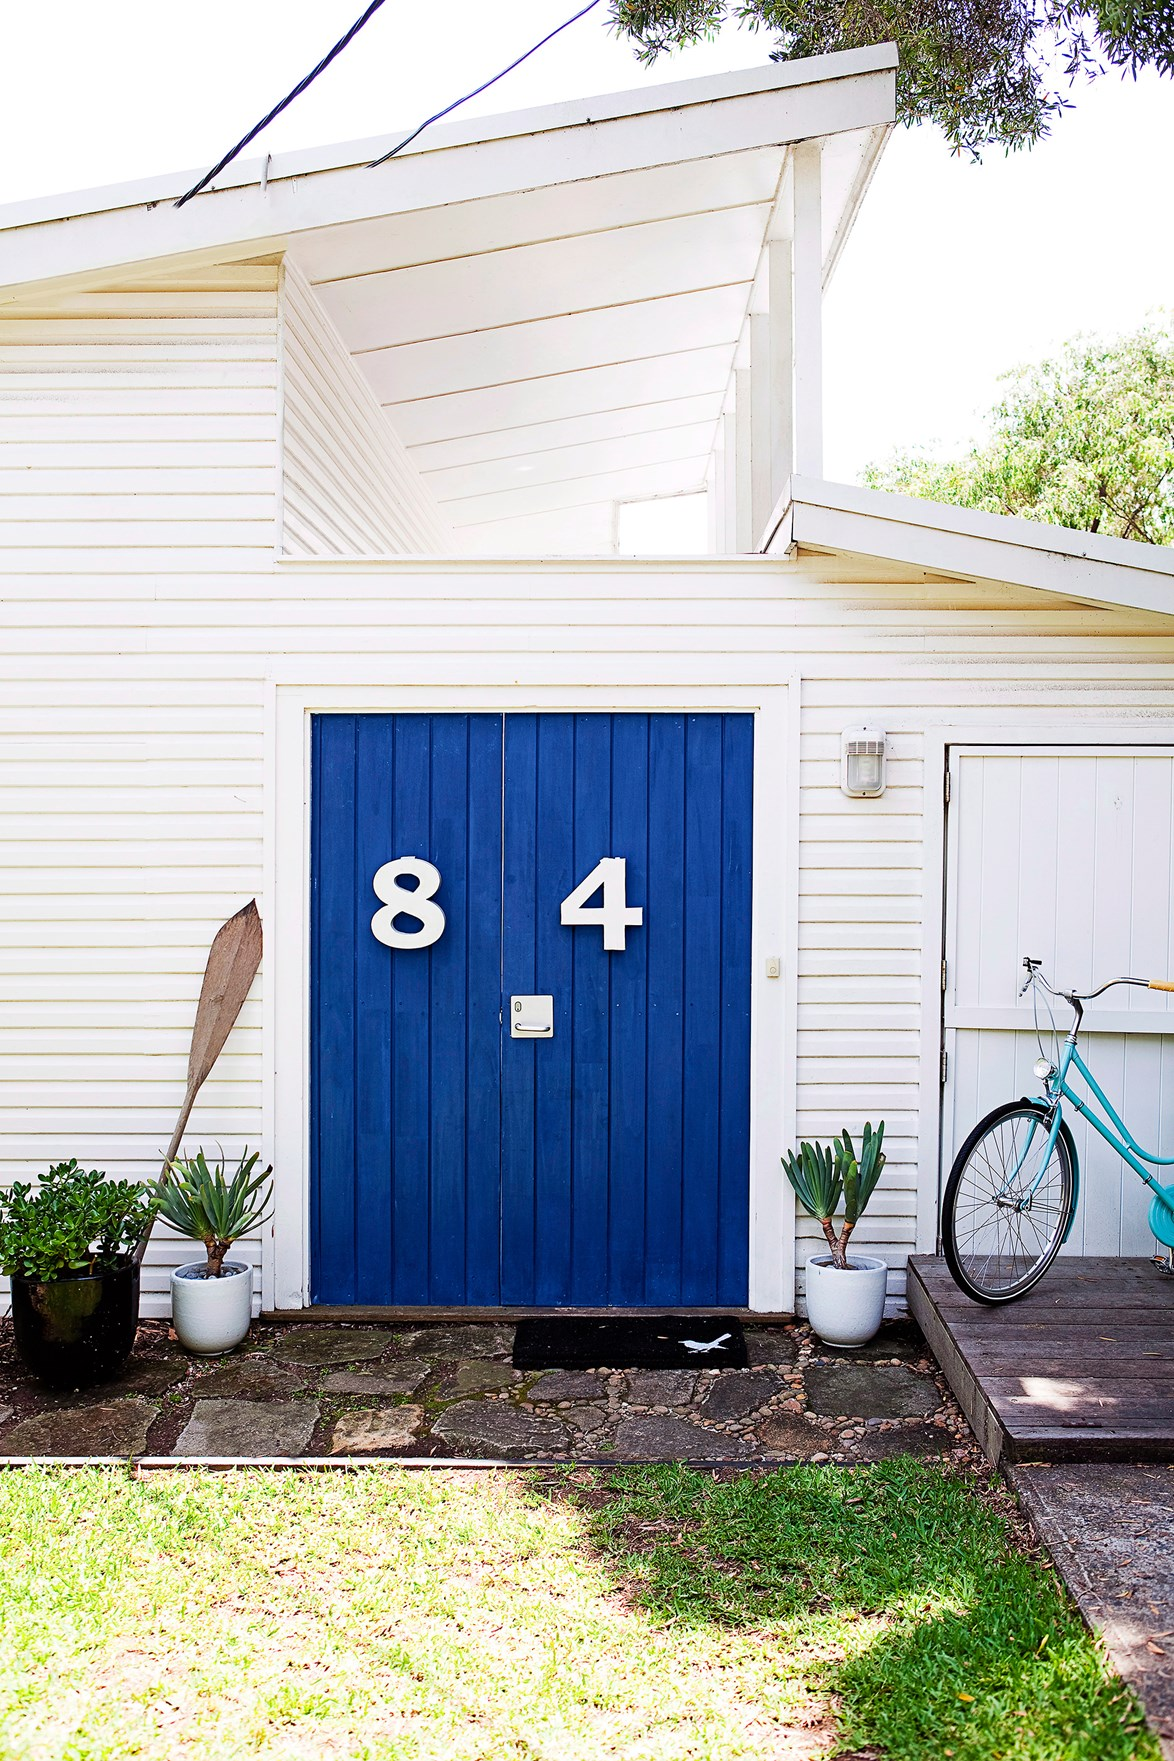 The blue and white colour scheme suits this coastal home to a tee.